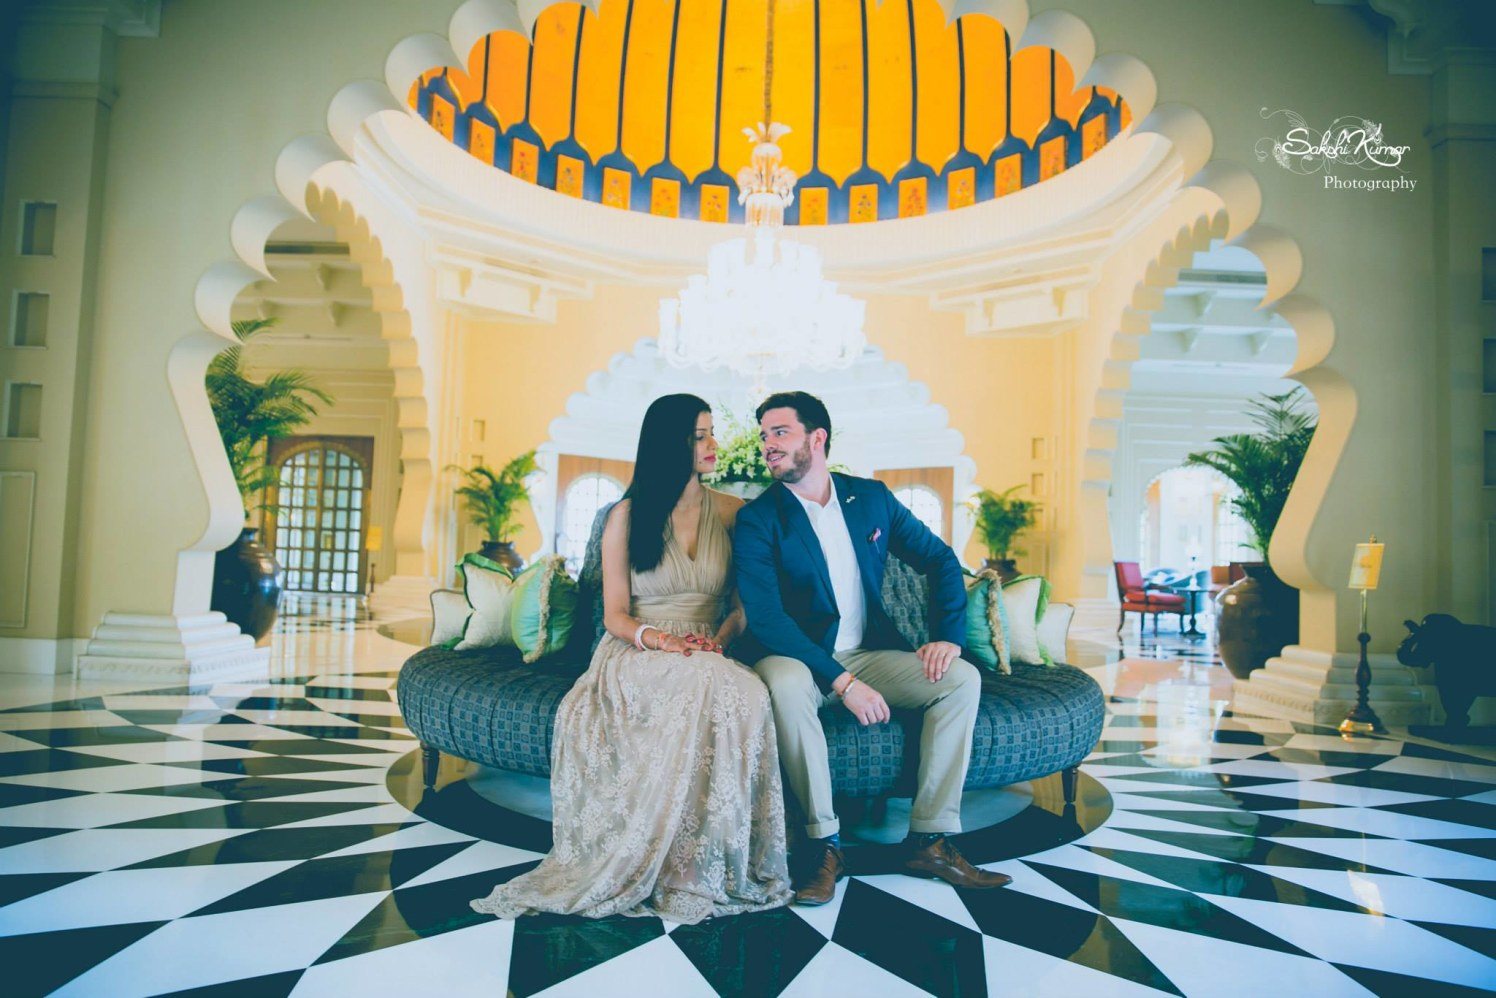 Enthralling Glimpse Of A Couple In A Sumptuous Royal Setup by Sakshi Kumar Wedding-photography | Weddings Photos & Ideas